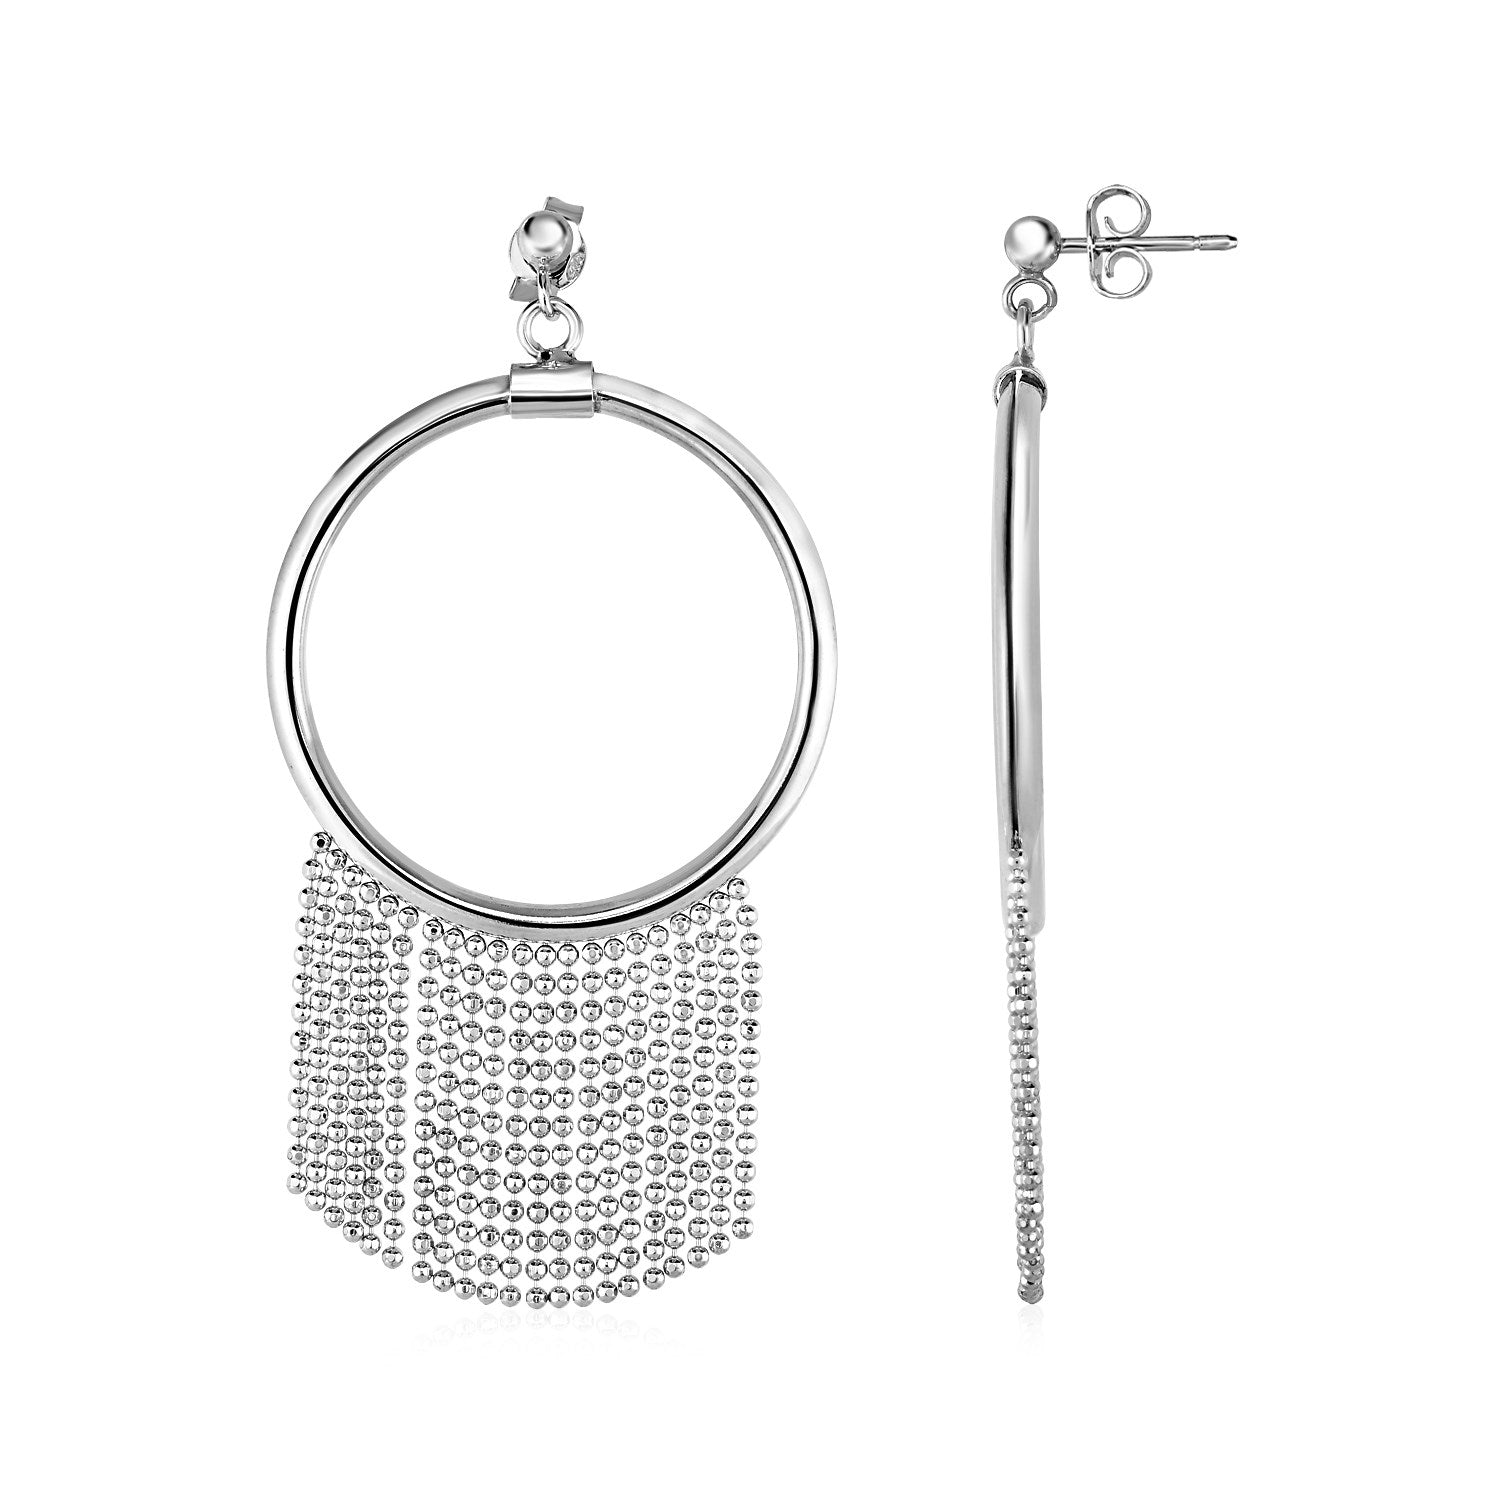 Unique Modern Paris Style Polished Ring Earrings with Chain Tassels in Sterling Silver